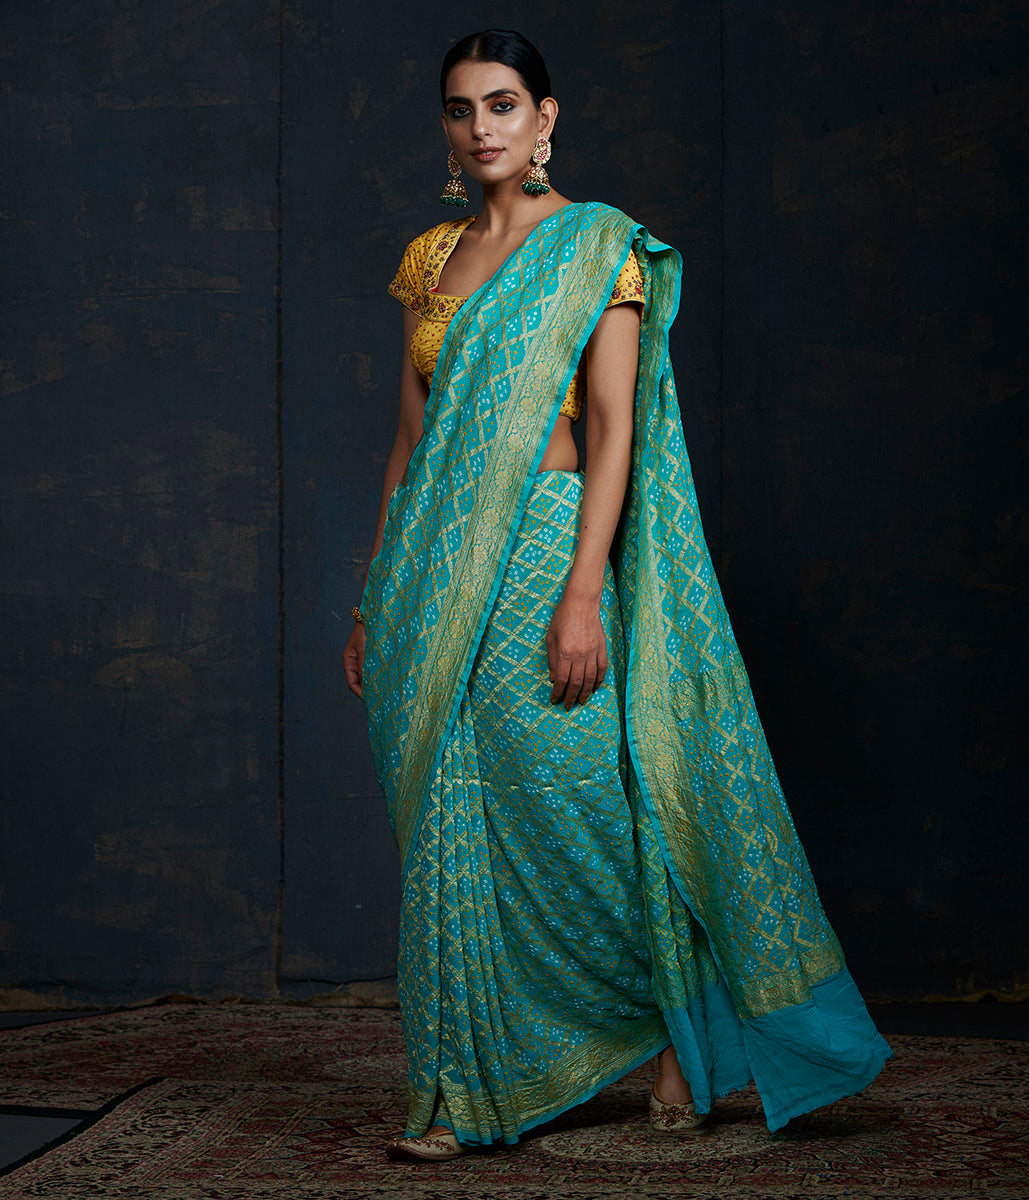 Handwoven Banarasi Bandhej Saree in Turquoise color